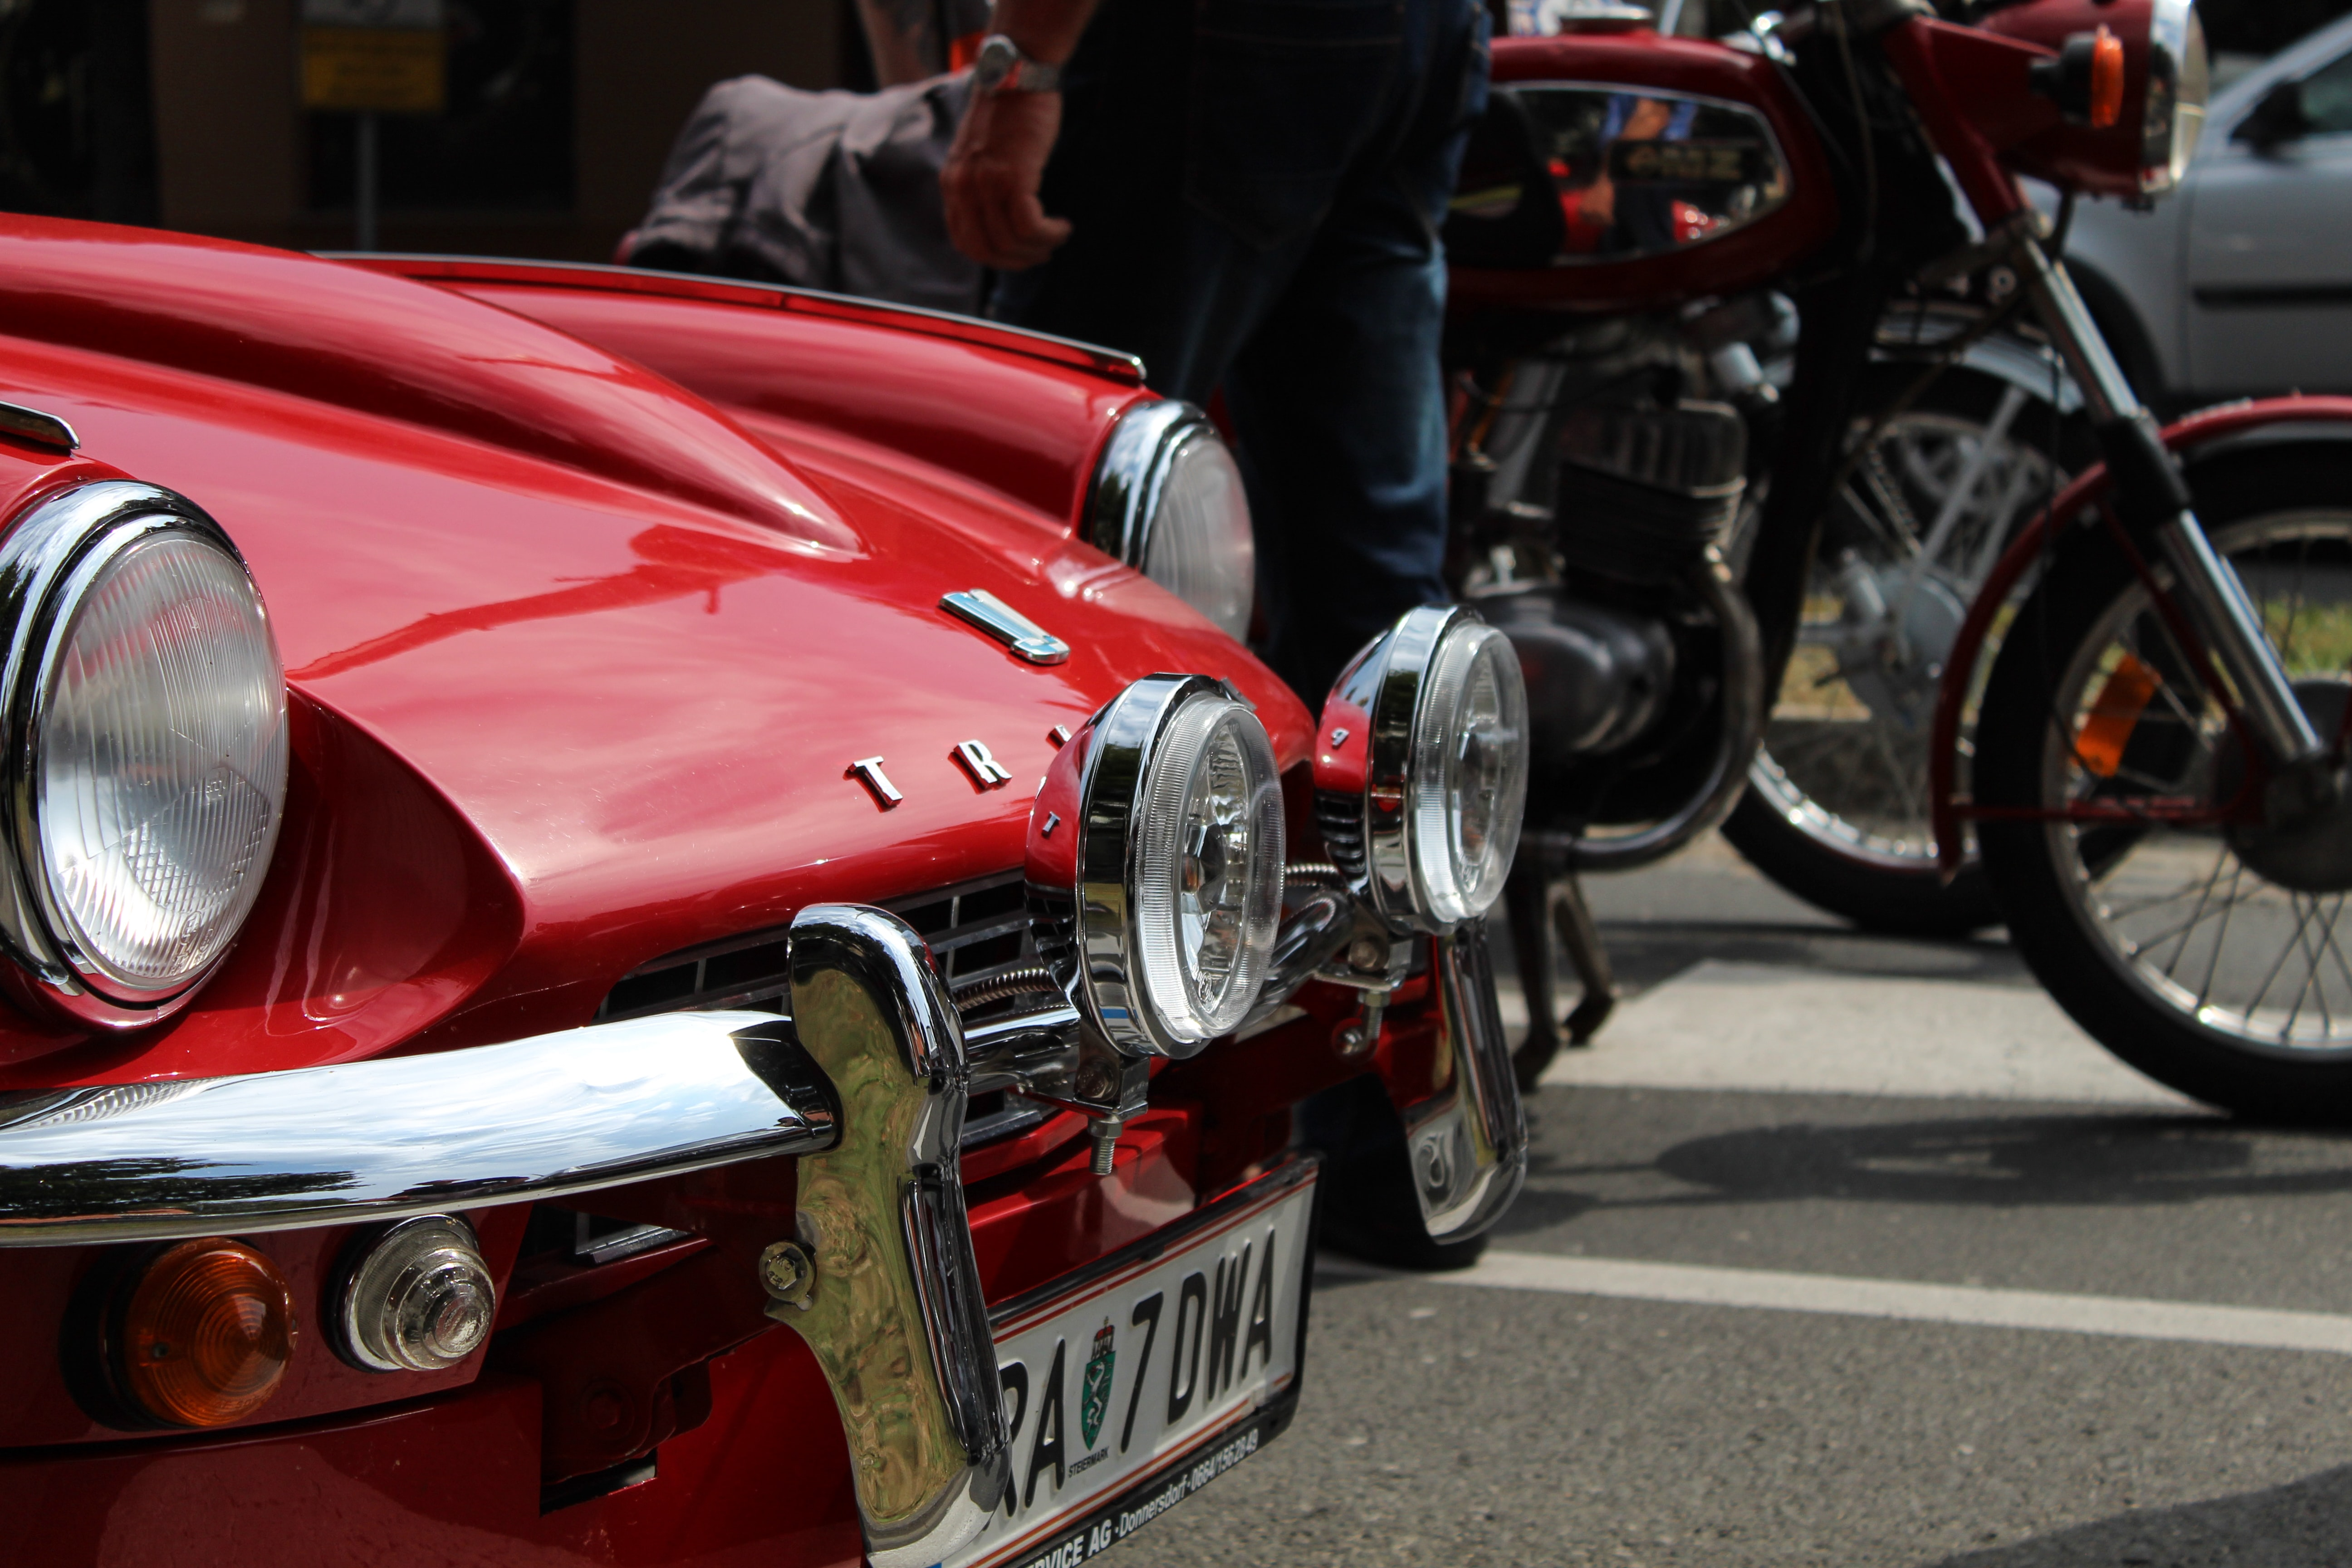 vintage red car near person driving motorcycle during daytime